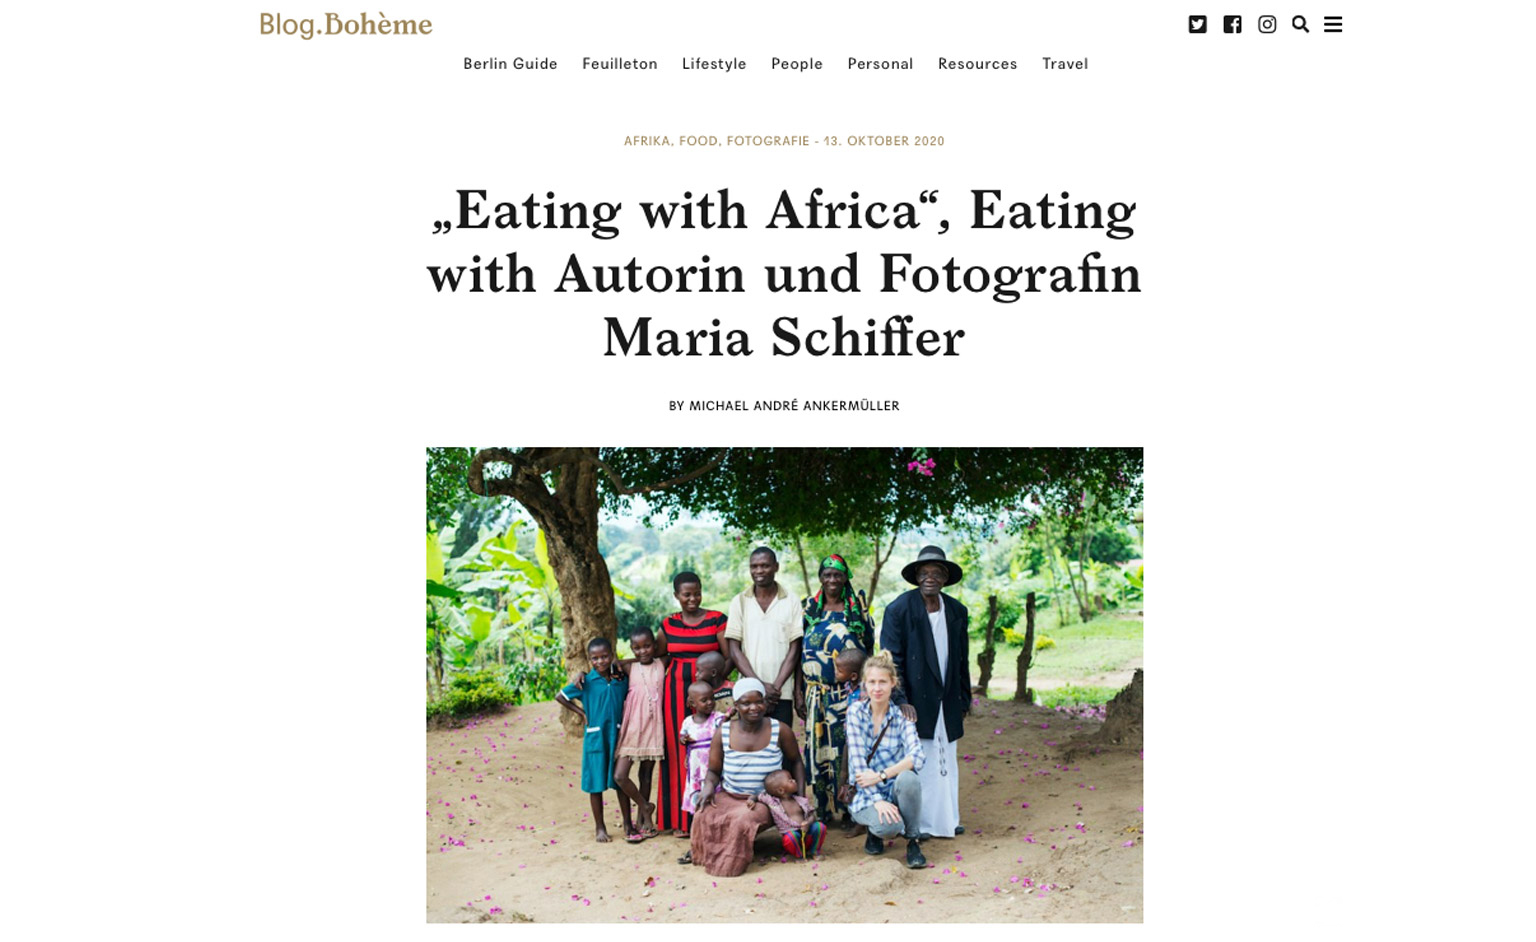 Artikel über Maria Schiffer Eating with Africa